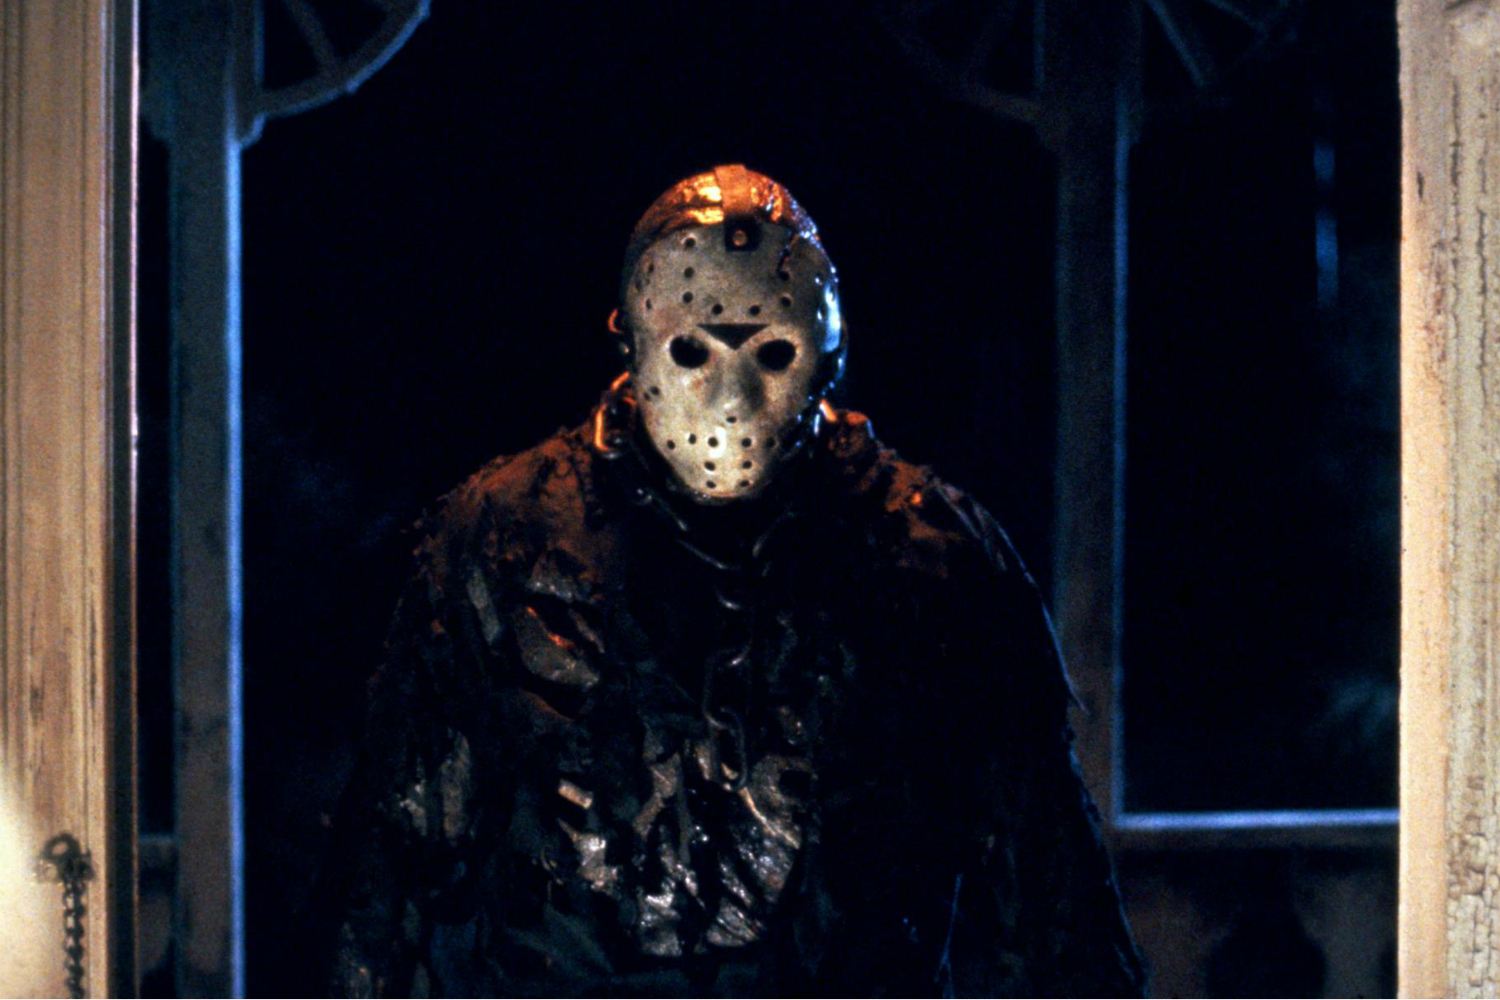 Behind the mask: Jason will get new origin story in next 'Friday ...